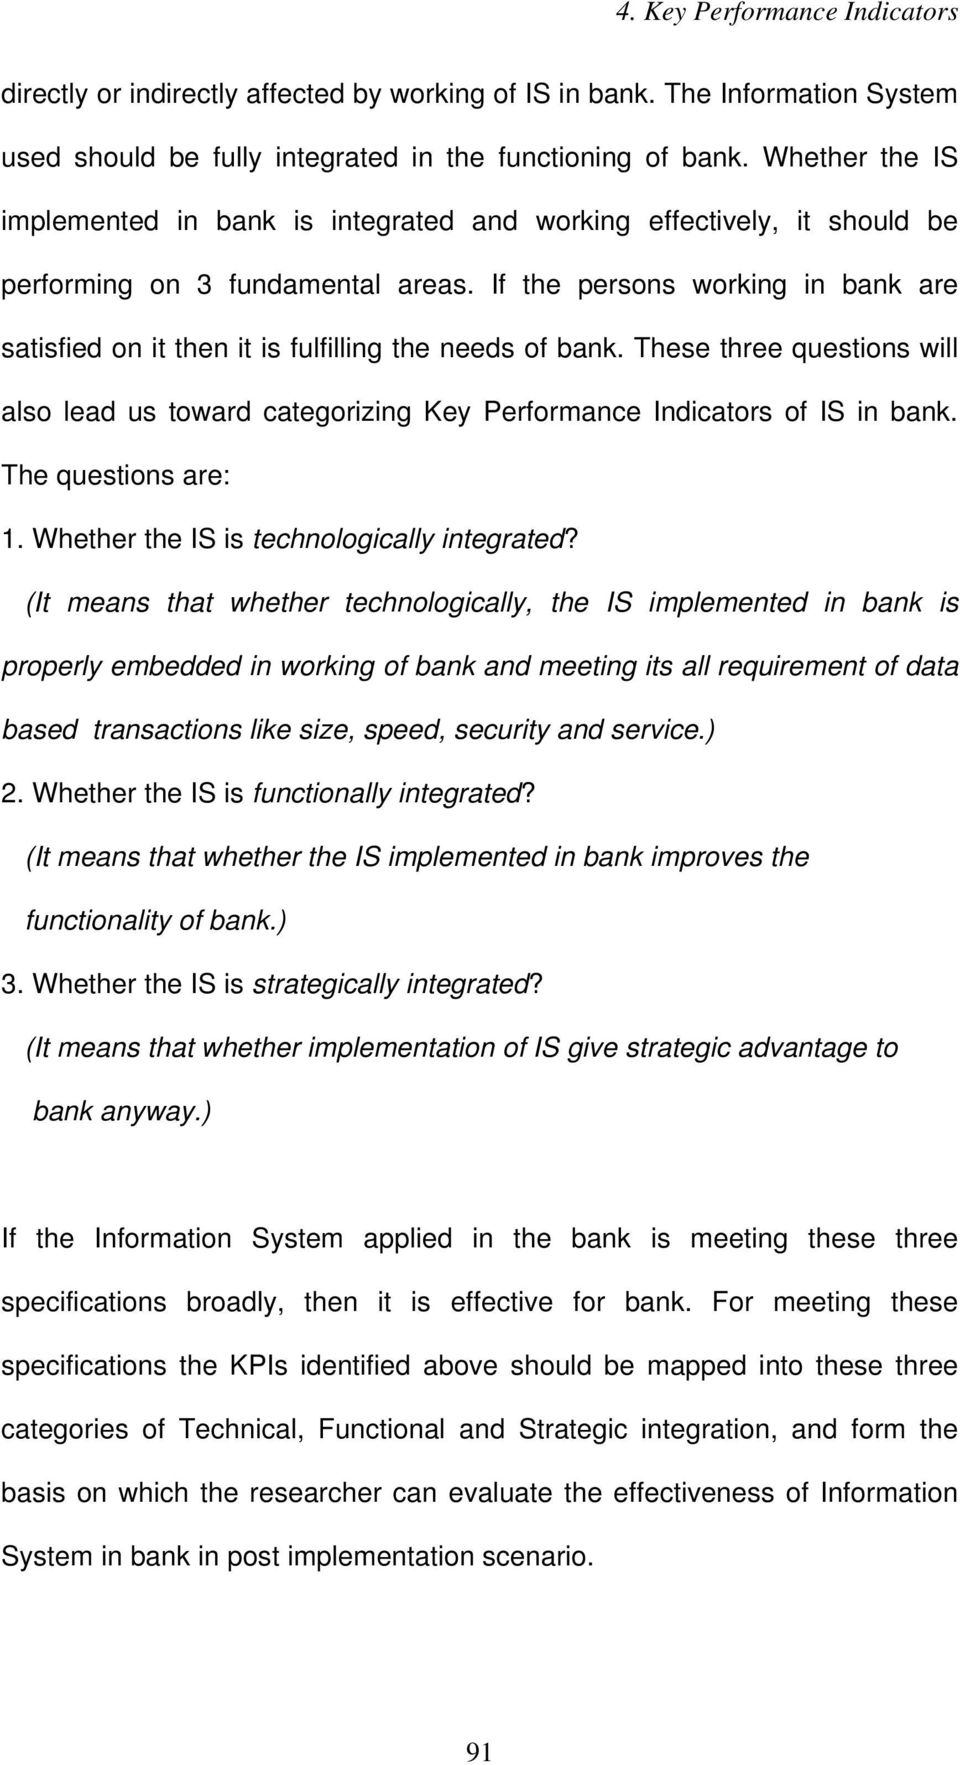 If the persons working in bank are satisfied on it then it is fulfilling the needs of bank. These three questions will also lead us toward categorizing Key Performance Indicators of IS in bank.